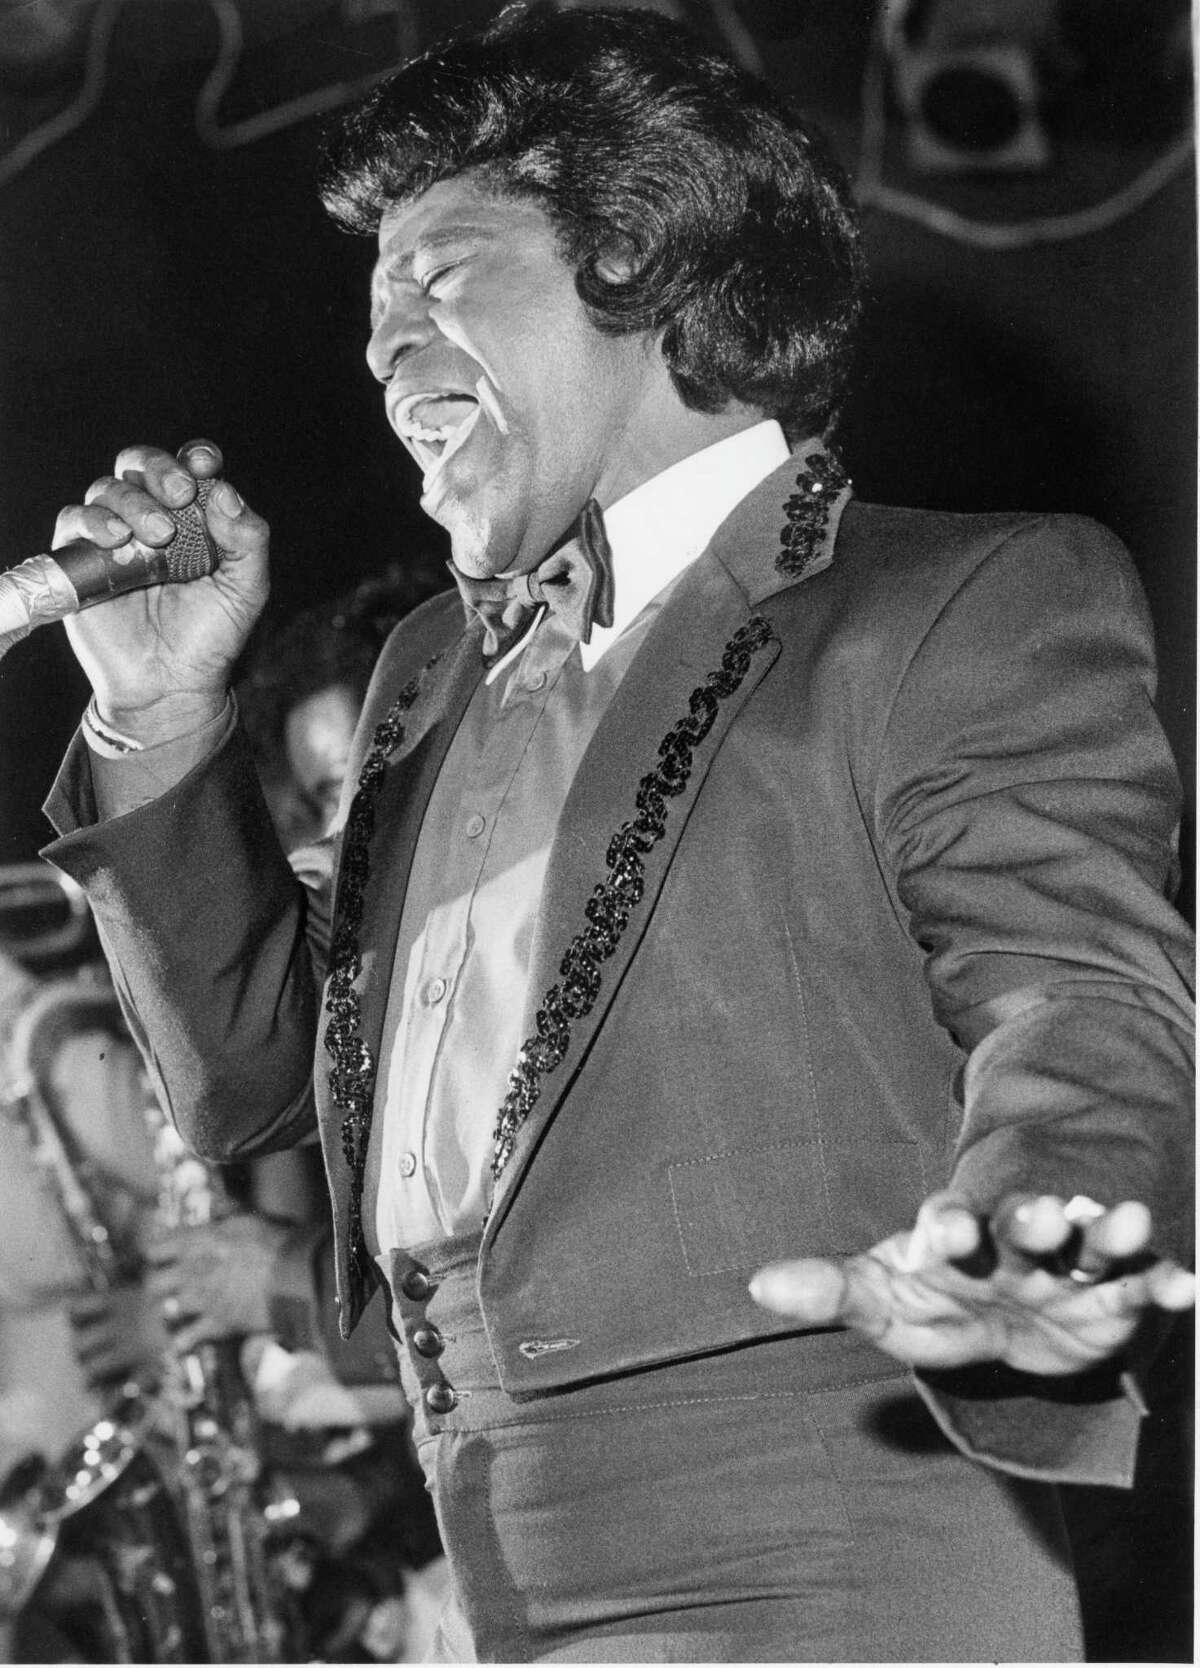 PHOTOS: Fitzgerald's through the yearsJames Brown finds an emotional note during his engagement at Fitzgerald's in 1985. >>See what other big names have played the Houston venue.